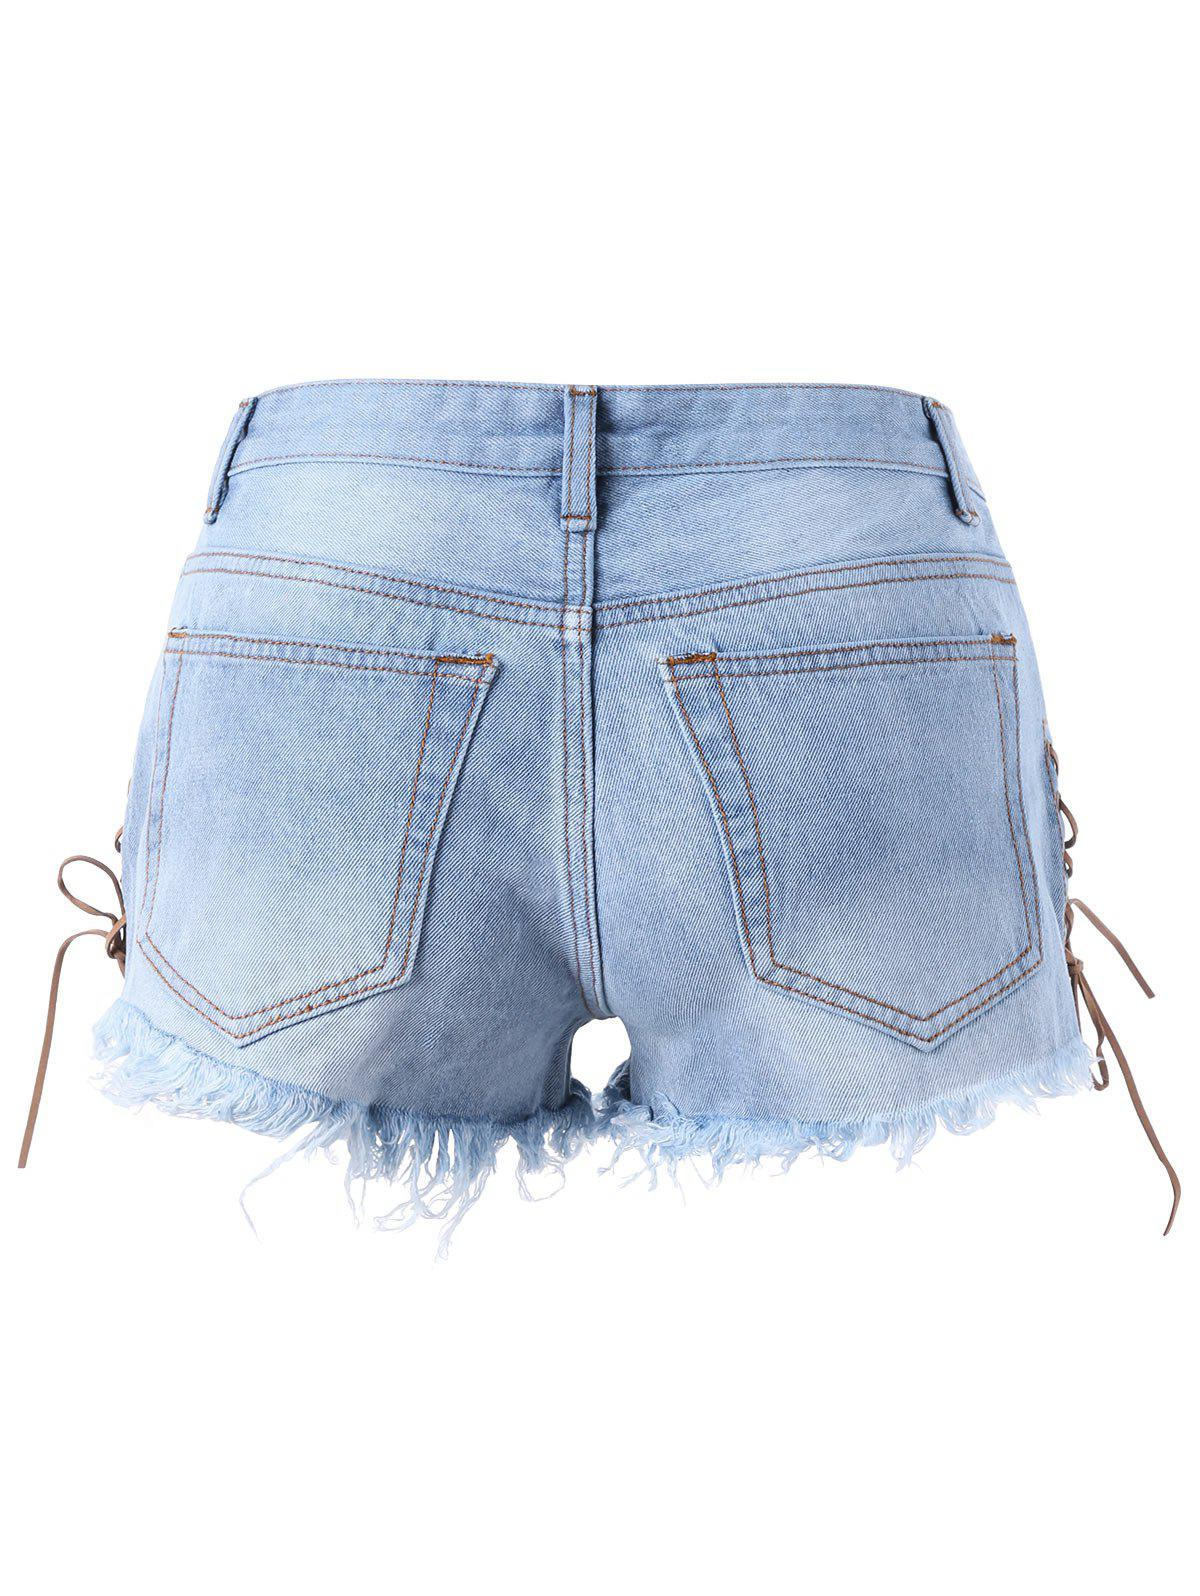 Lace Up Ripped Frayed Denim Shorts - LIGHT BLUE 2XL